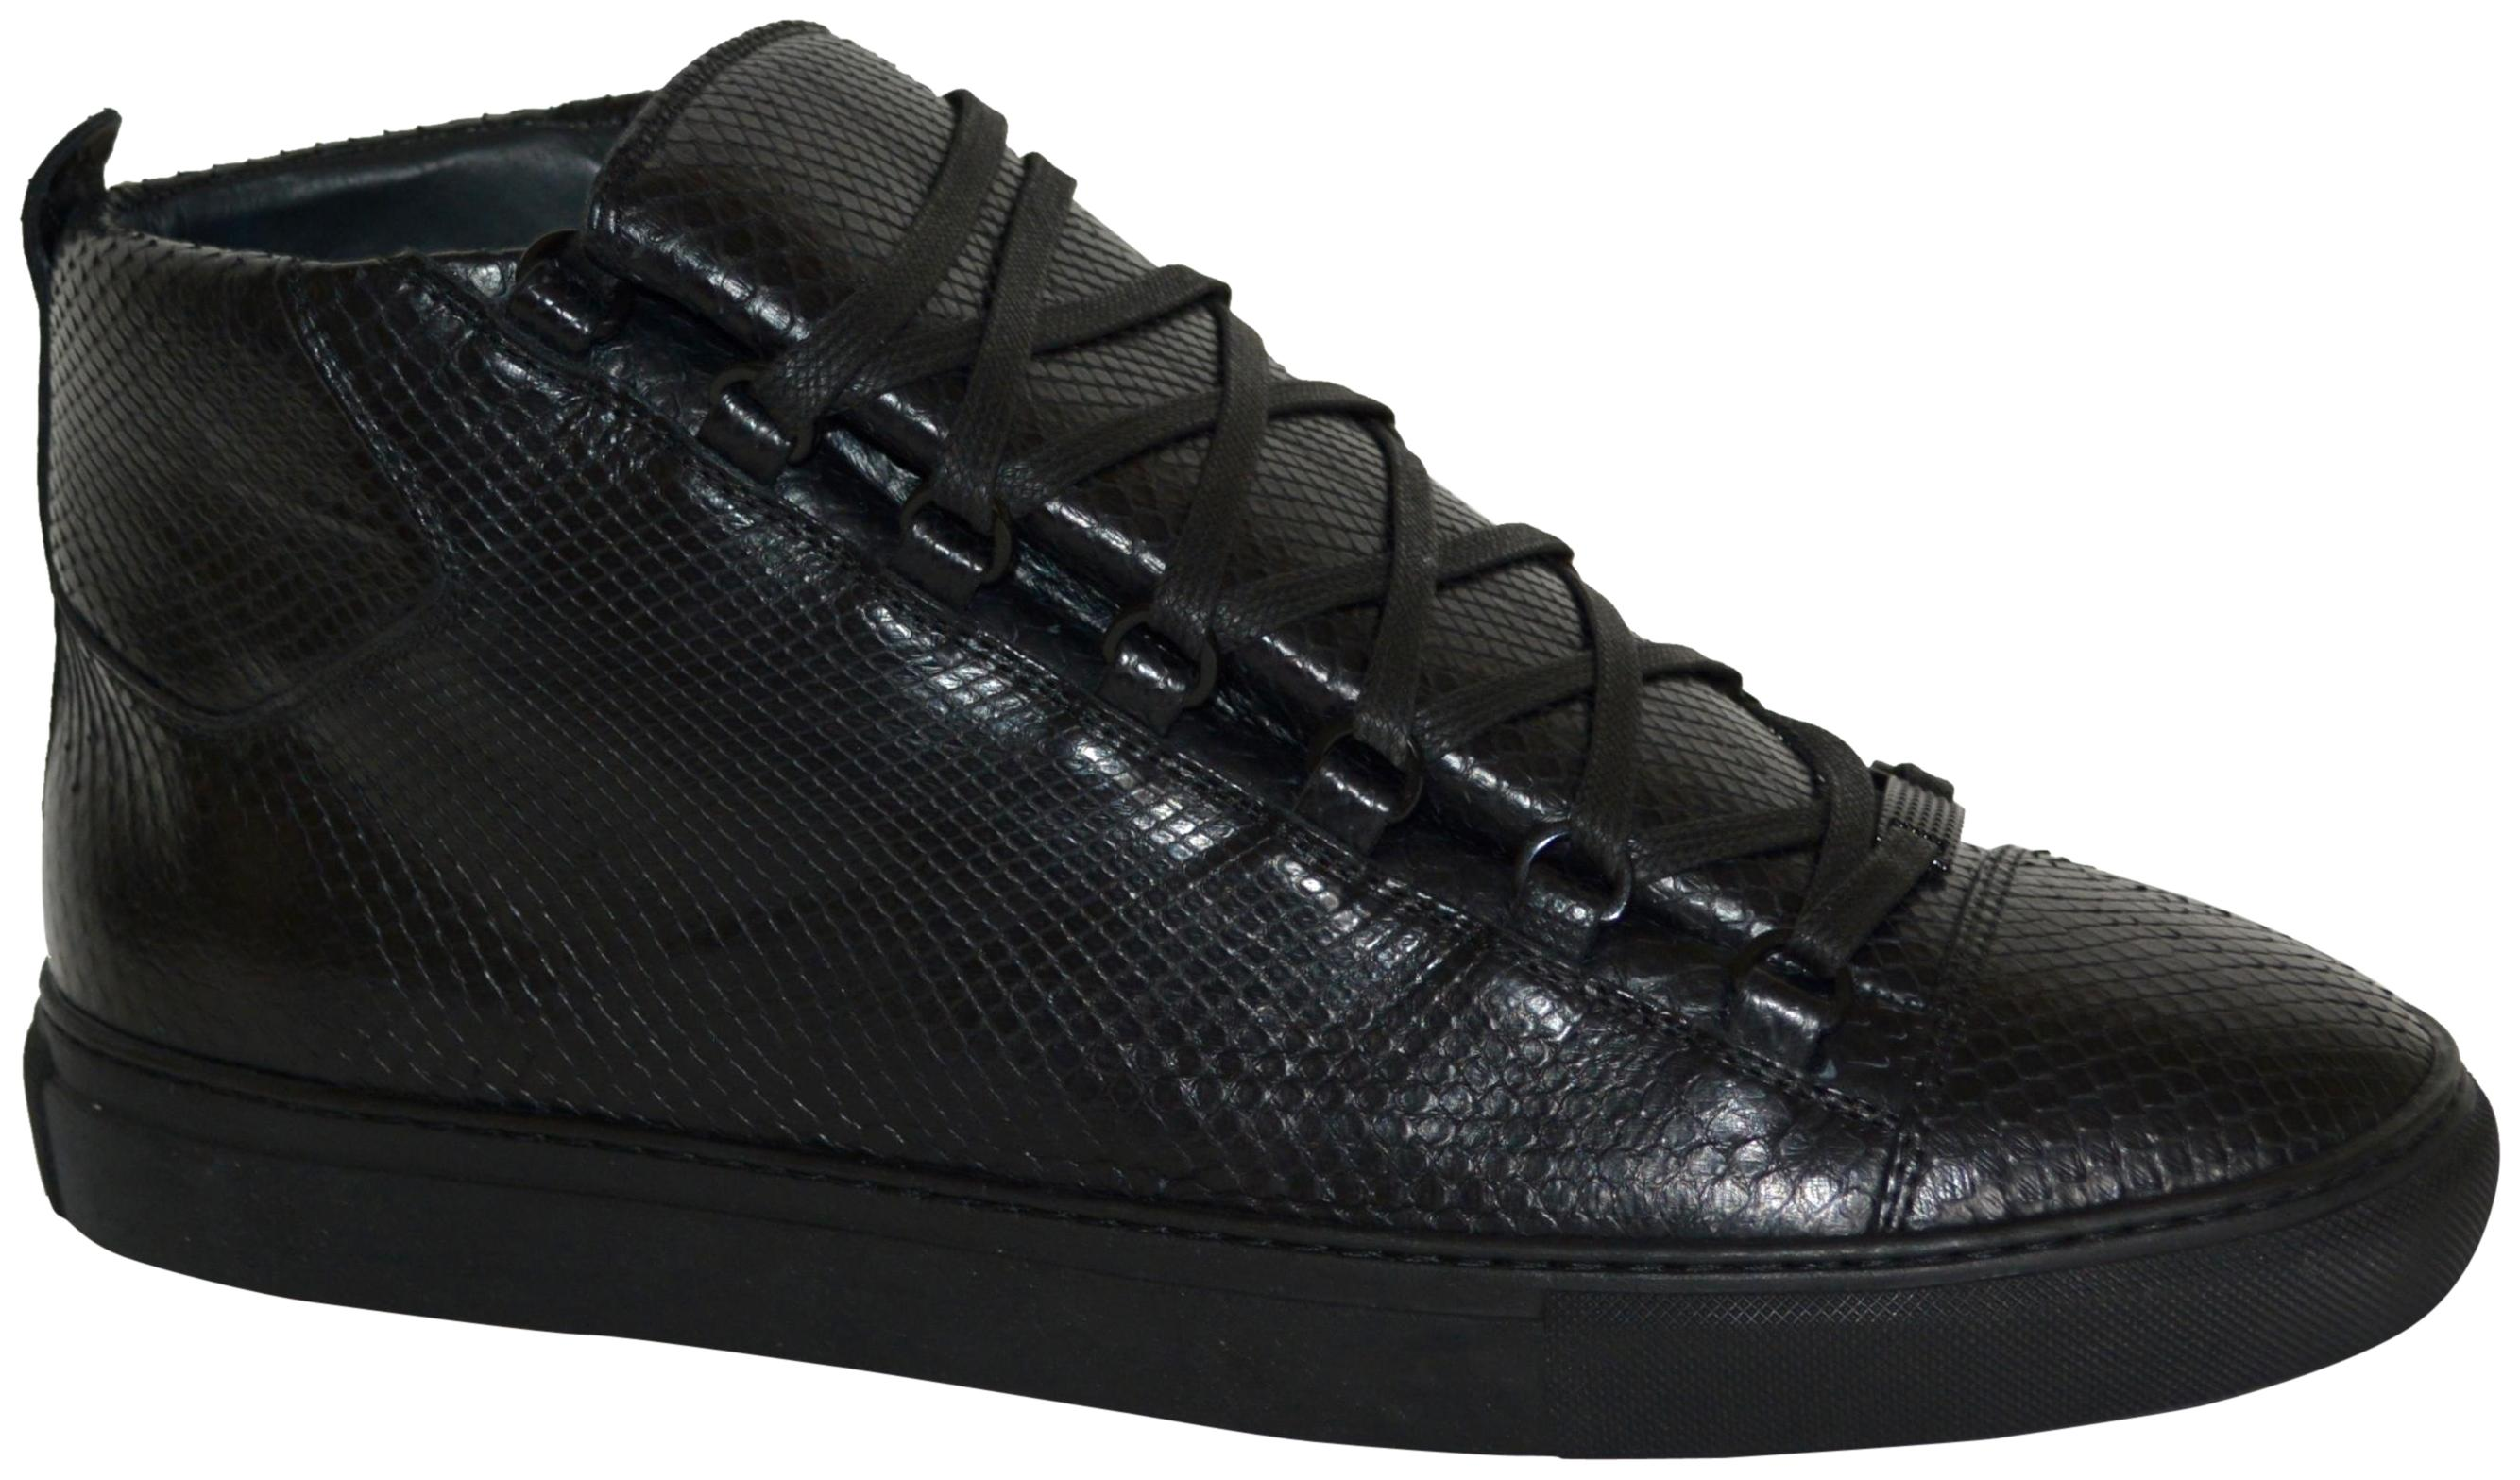 Balenciaga Black New Hitop Python Leather Sneakers Eu 48 Mens Sneakers Size US 13 Regular (M, B)